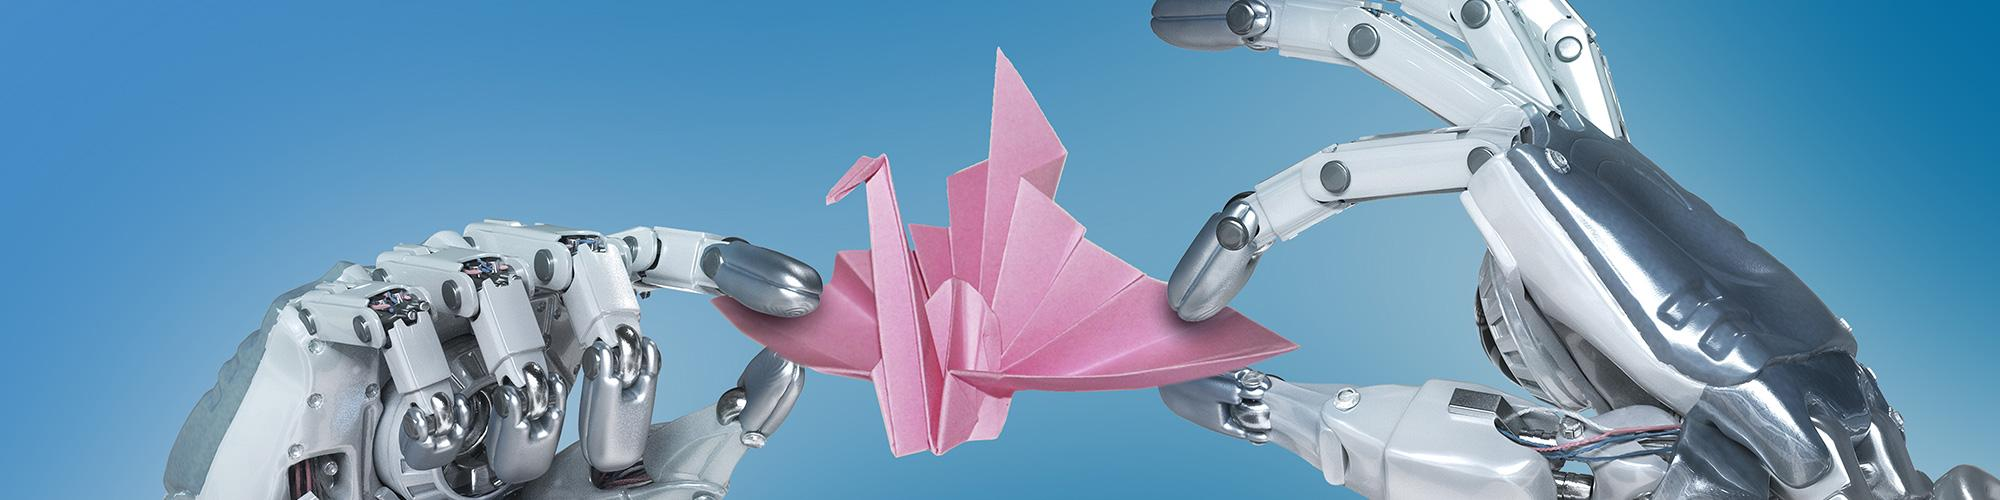 Robot hand making an origami paper crane - Blue Background